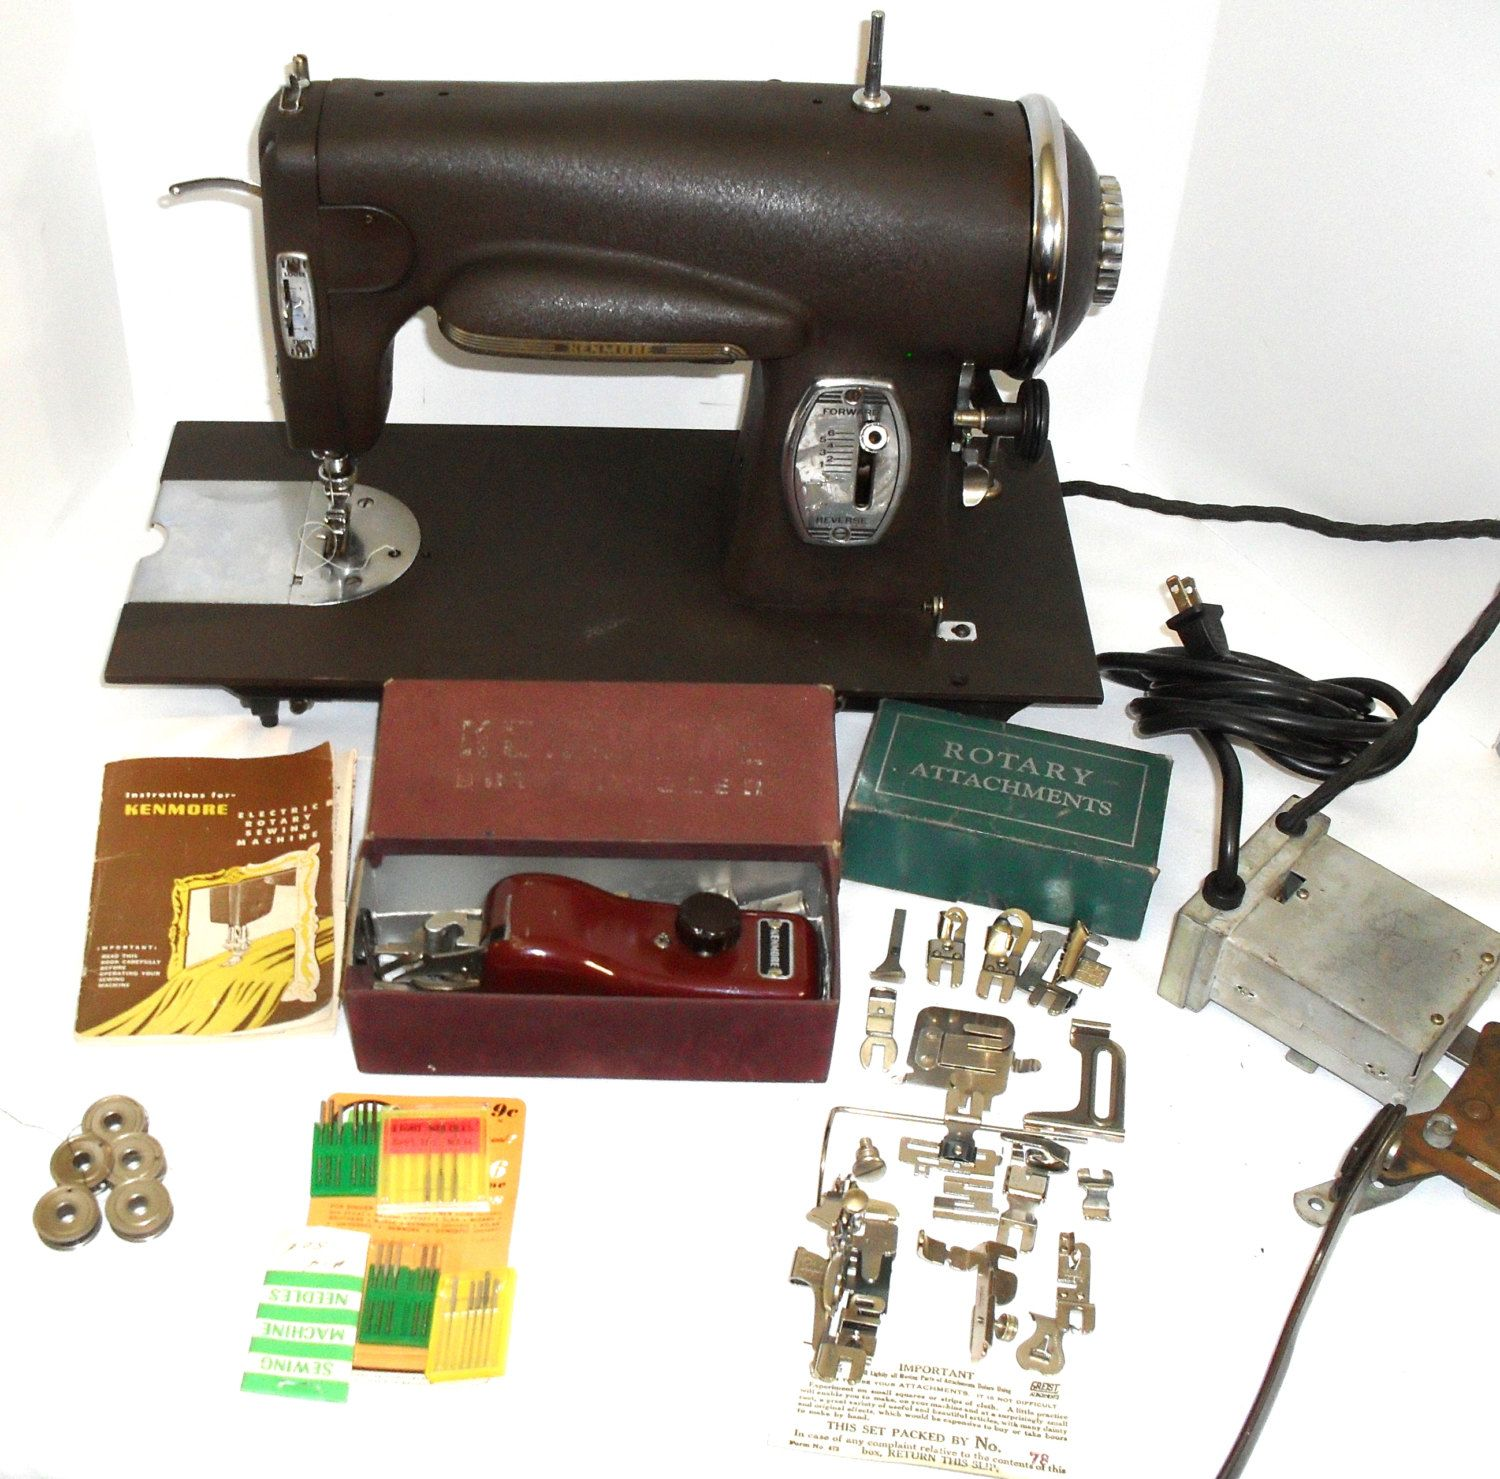 medium resolution of 1940s kenmore 95 rotary heavy duty sewing machine model 117 959 w buttonholer manual needles bobbins and attachments serviced ready to sew by